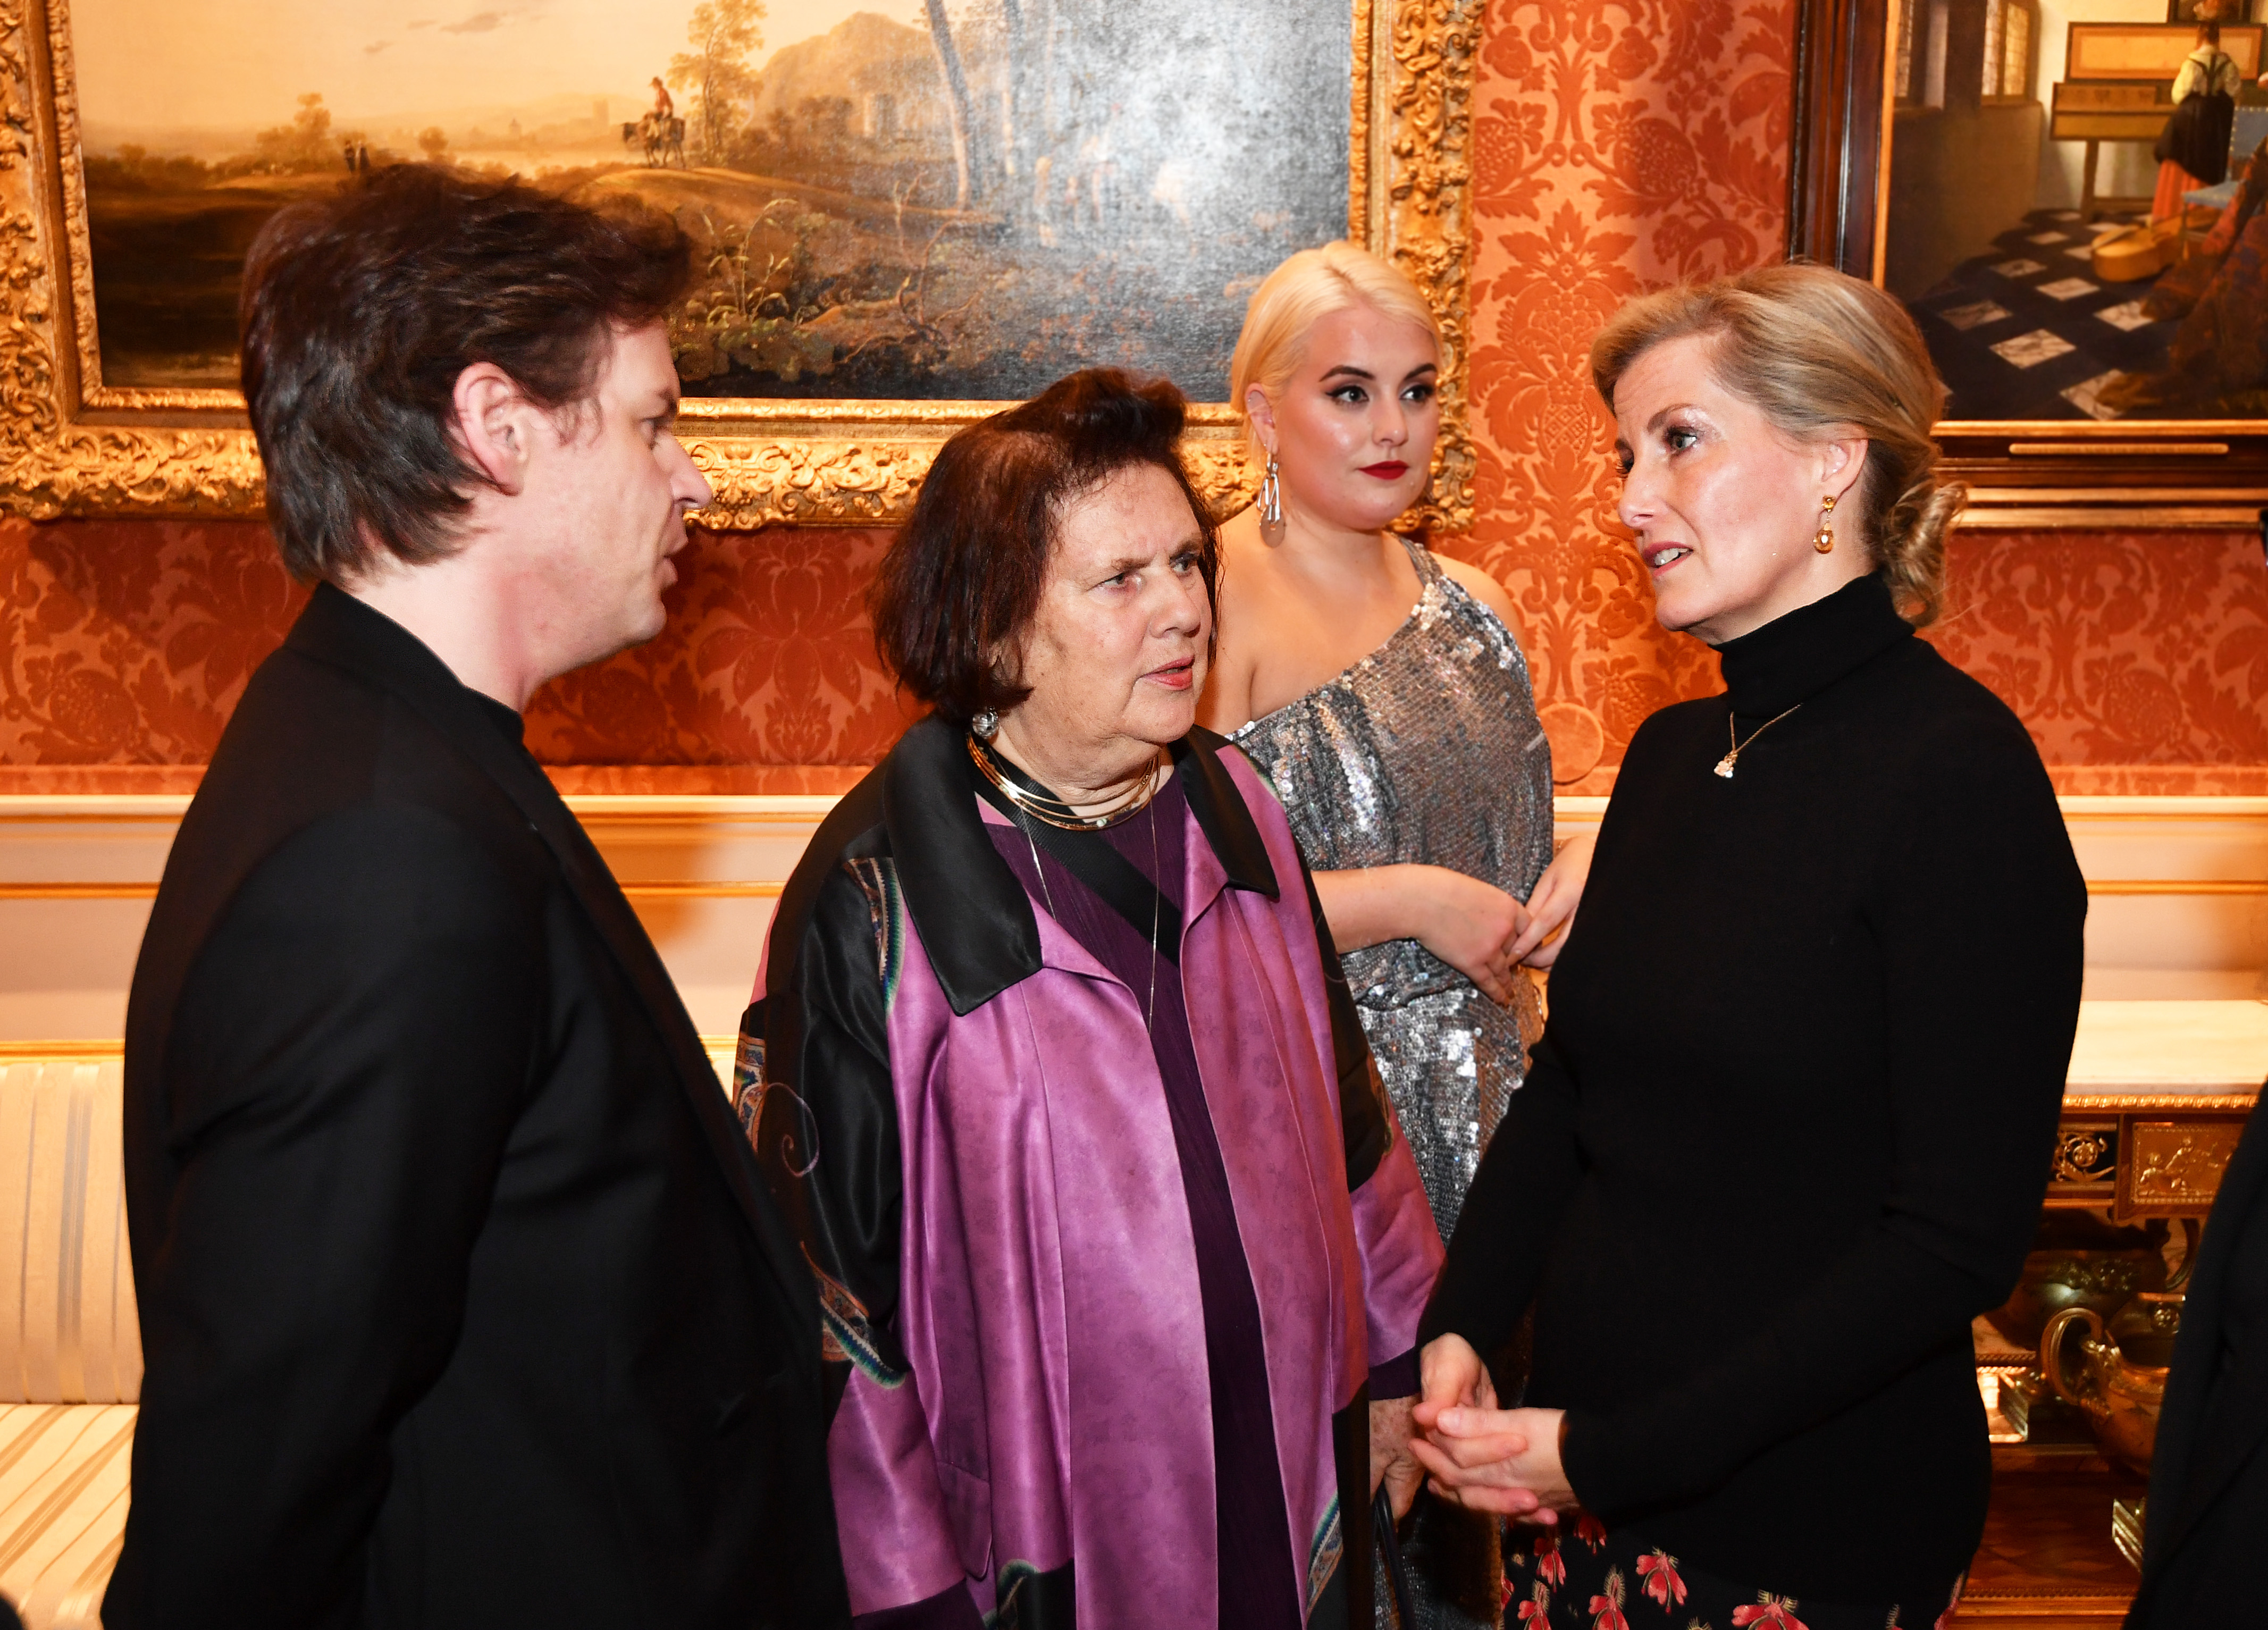 The Countess of Wessex Hosts a Fashion Reception at Buckingham Palace